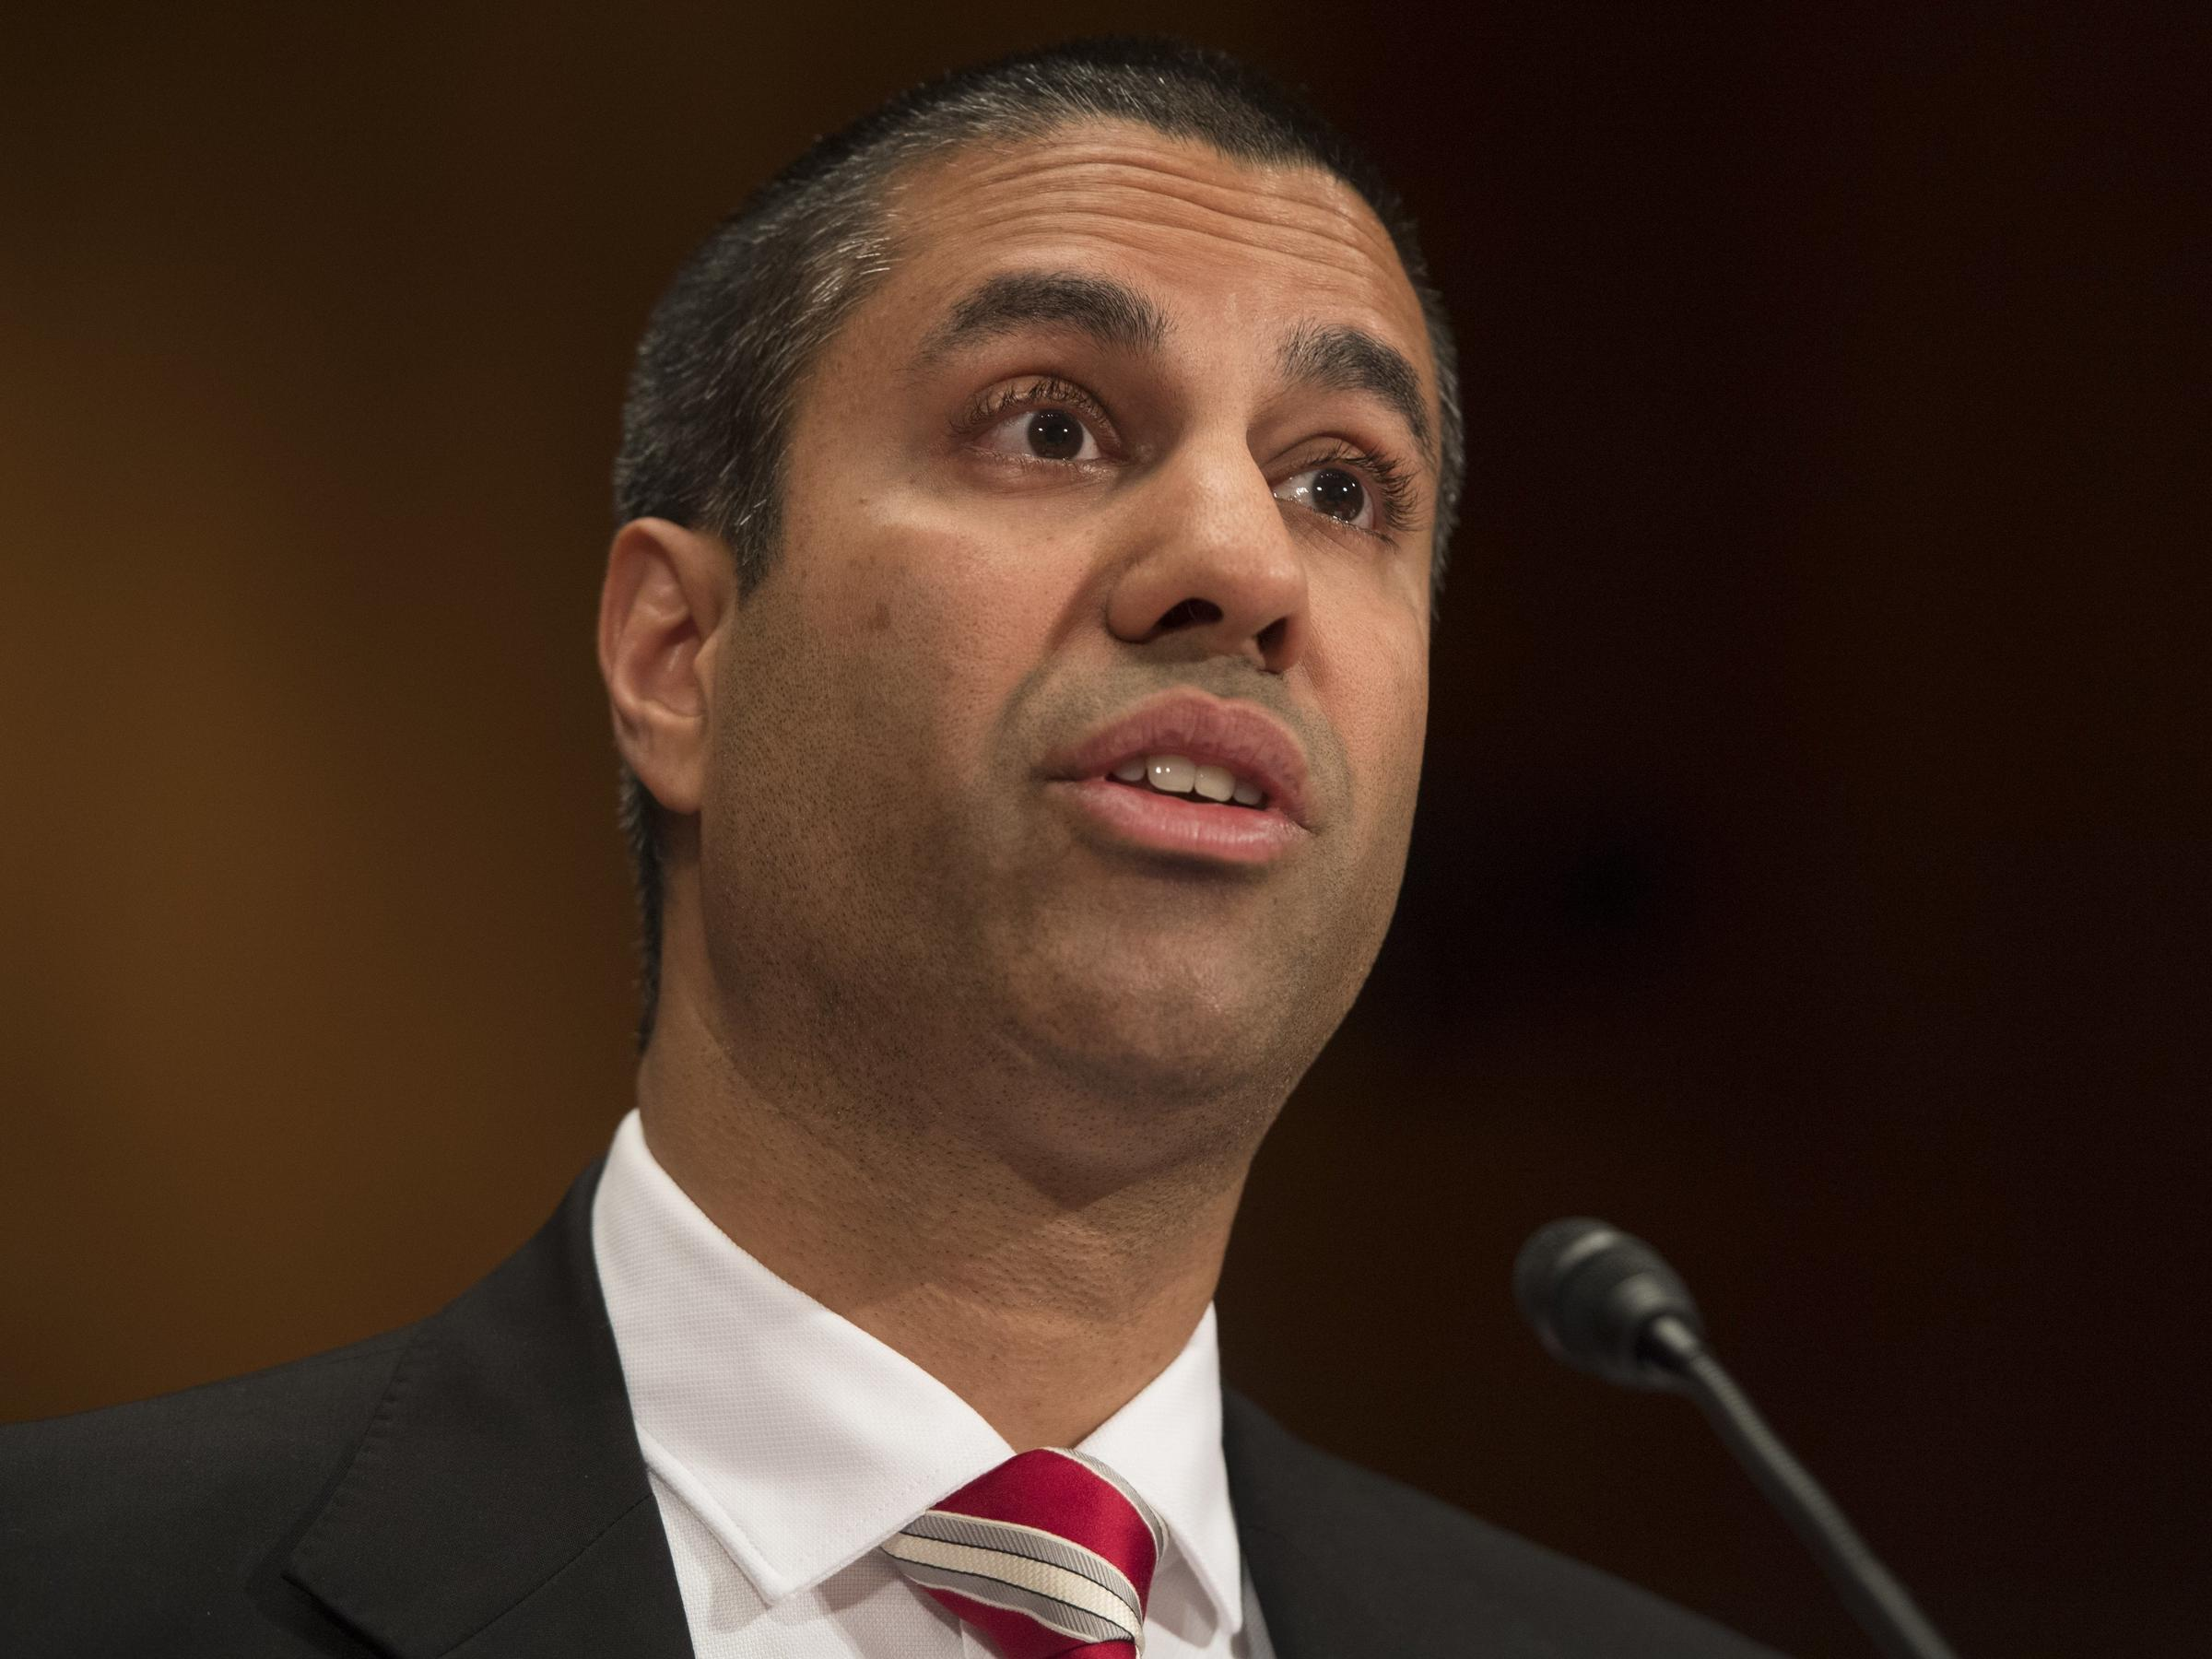 FCC Chairman Ajit Pai announced Tuesday a plan to repeal Obama-era net neutrality rules